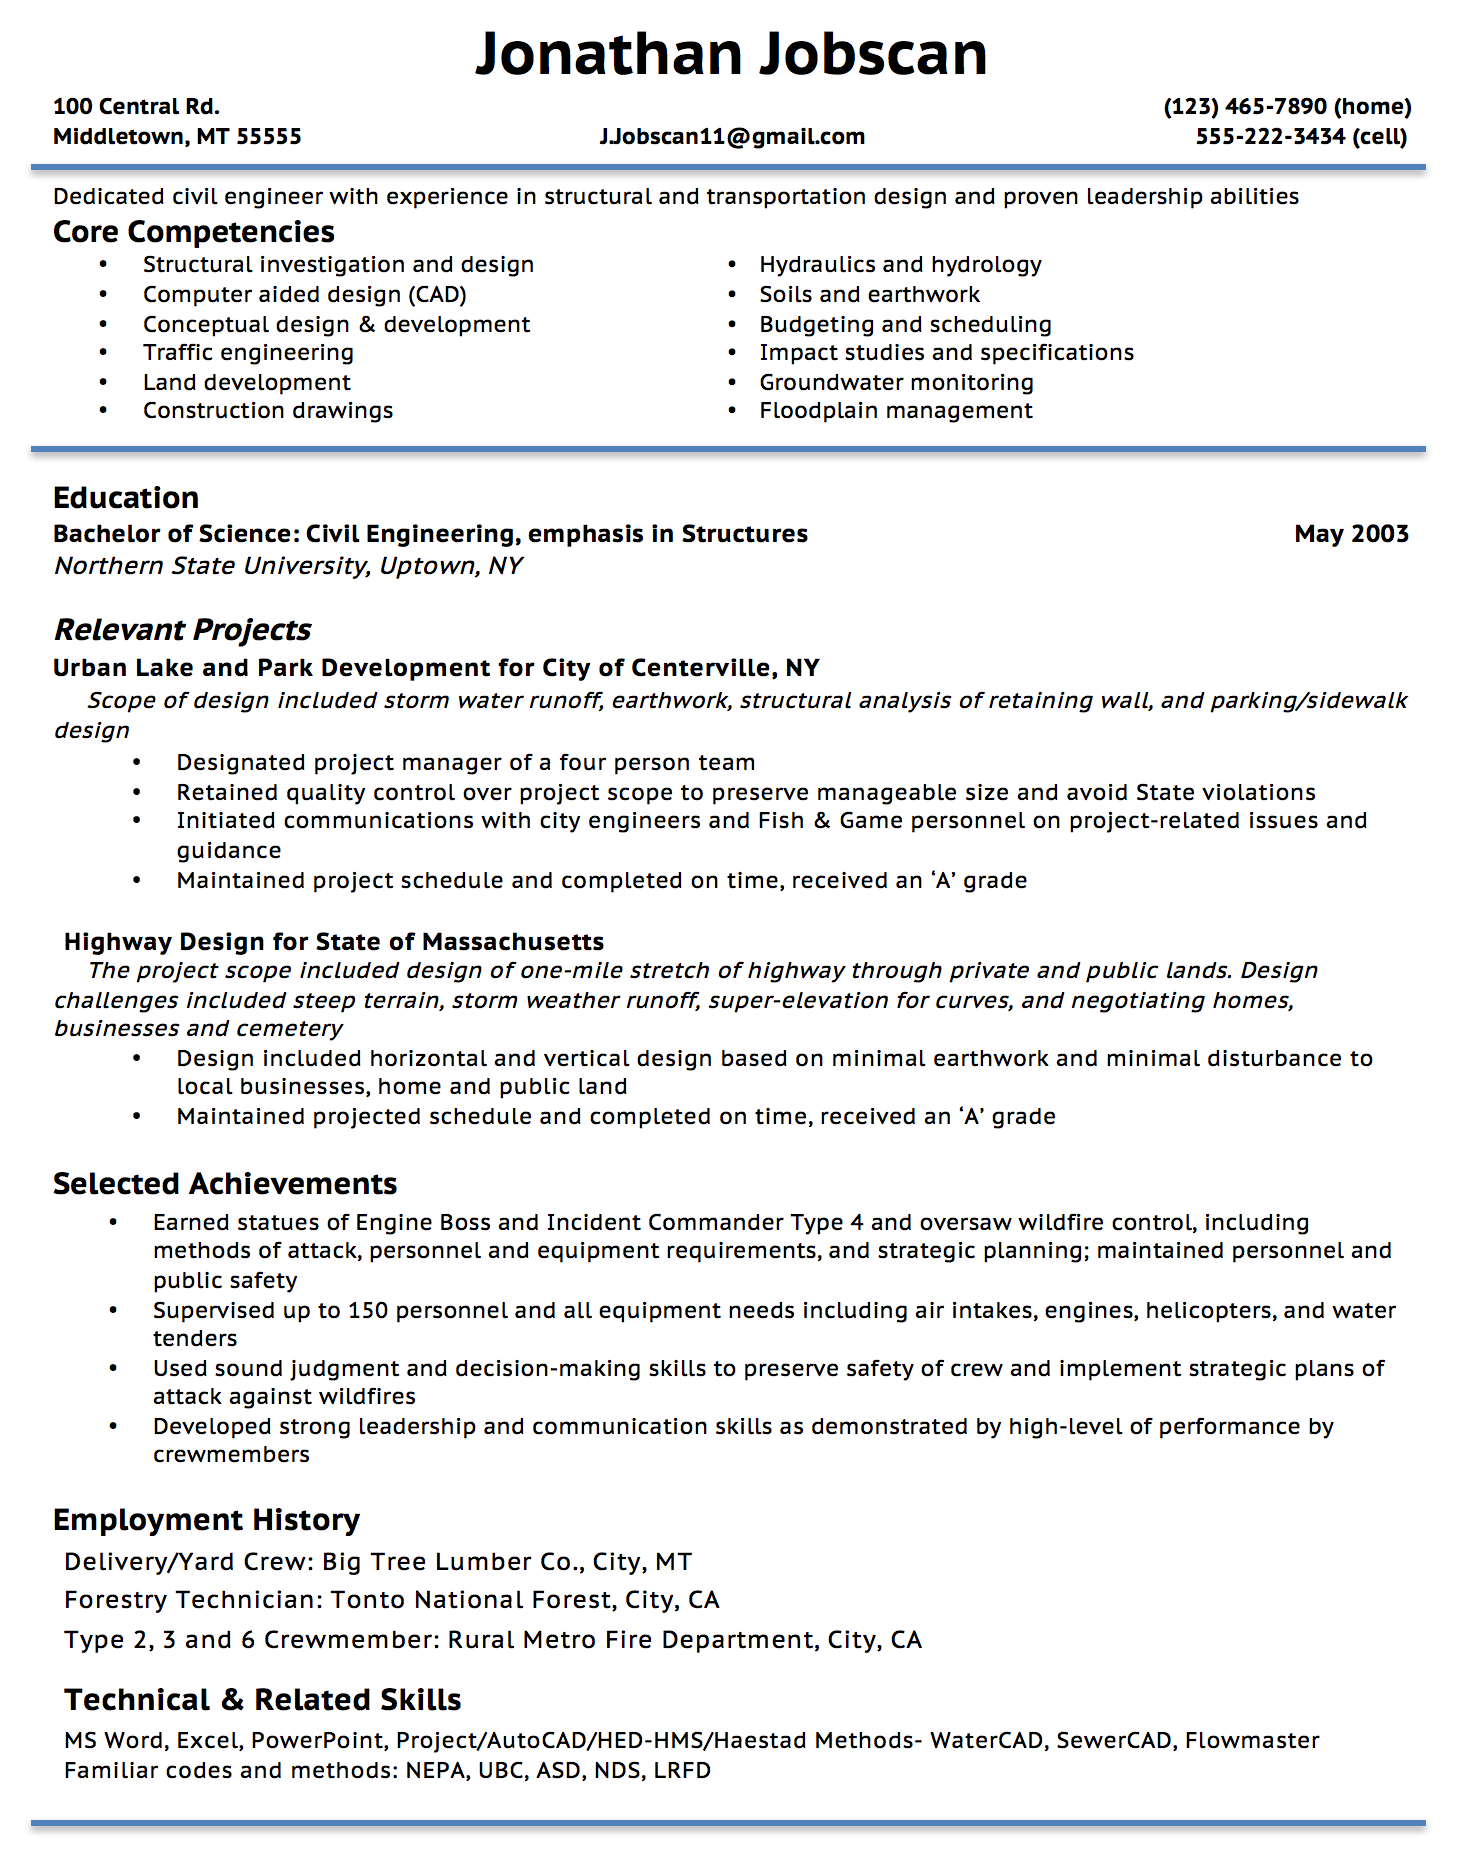 Opposenewapstandardsus  Picturesque Resume Writing Guide  Jobscan With Exquisite Example Of A Functional Resume Format With Astonishing Budget Analyst Resume Also Salary History On Resume In Addition Nursing Resume Skills And Cna Resume No Experience As Well As High School Education On Resume Additionally Word Resume Template Download From Jobscanco With Opposenewapstandardsus  Exquisite Resume Writing Guide  Jobscan With Astonishing Example Of A Functional Resume Format And Picturesque Budget Analyst Resume Also Salary History On Resume In Addition Nursing Resume Skills From Jobscanco